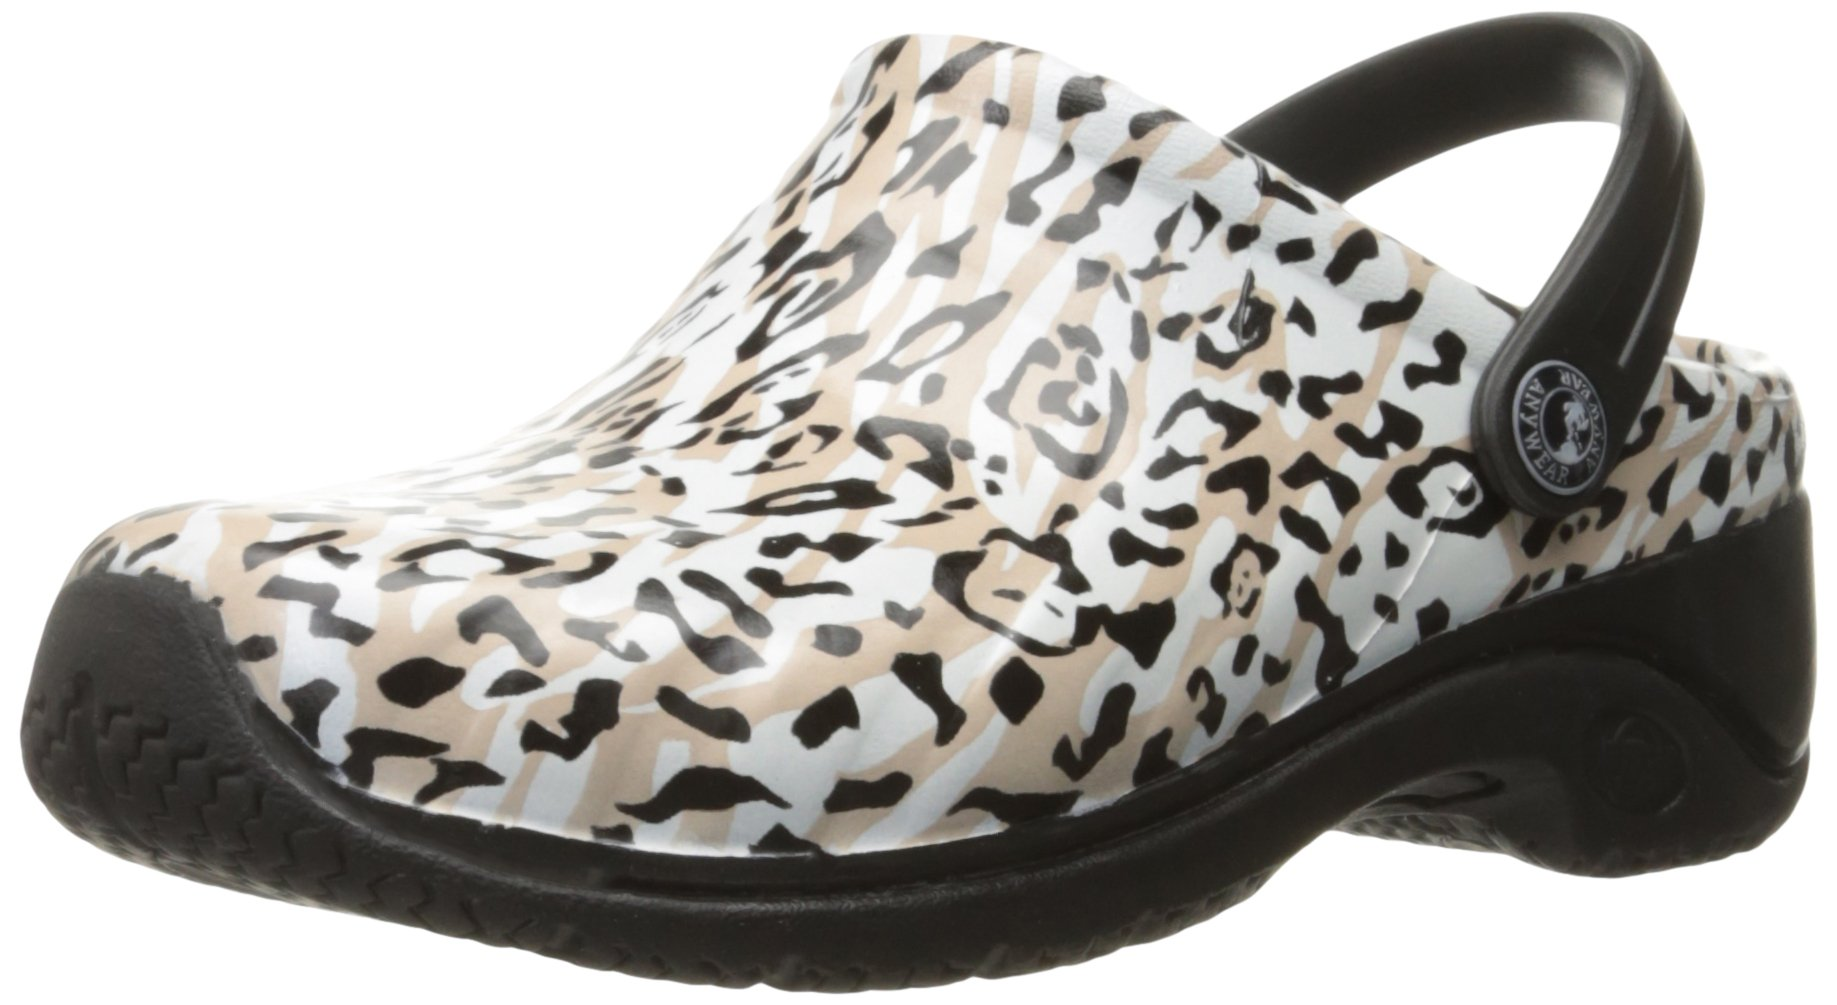 Anywear Women's Zone Health Care and Food Service Shoe, Black/White/Tan, 6 M US